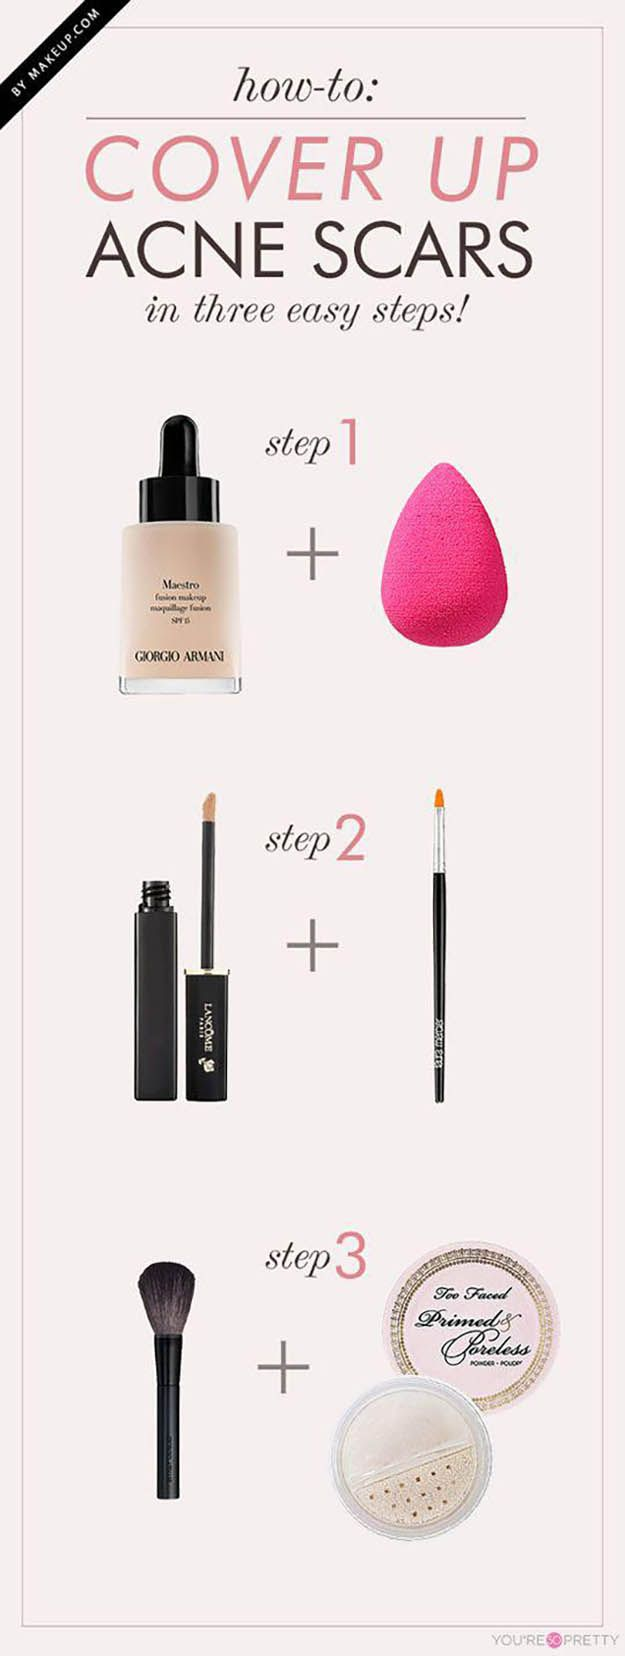 Echa un vistazo a 36 asombrosos Belleza Hacks | To Die For Make Up Tips en http://artesaniasdebricolaje.ru/36-amazing-beauty-hacks-to-die-for-make-up-tips/